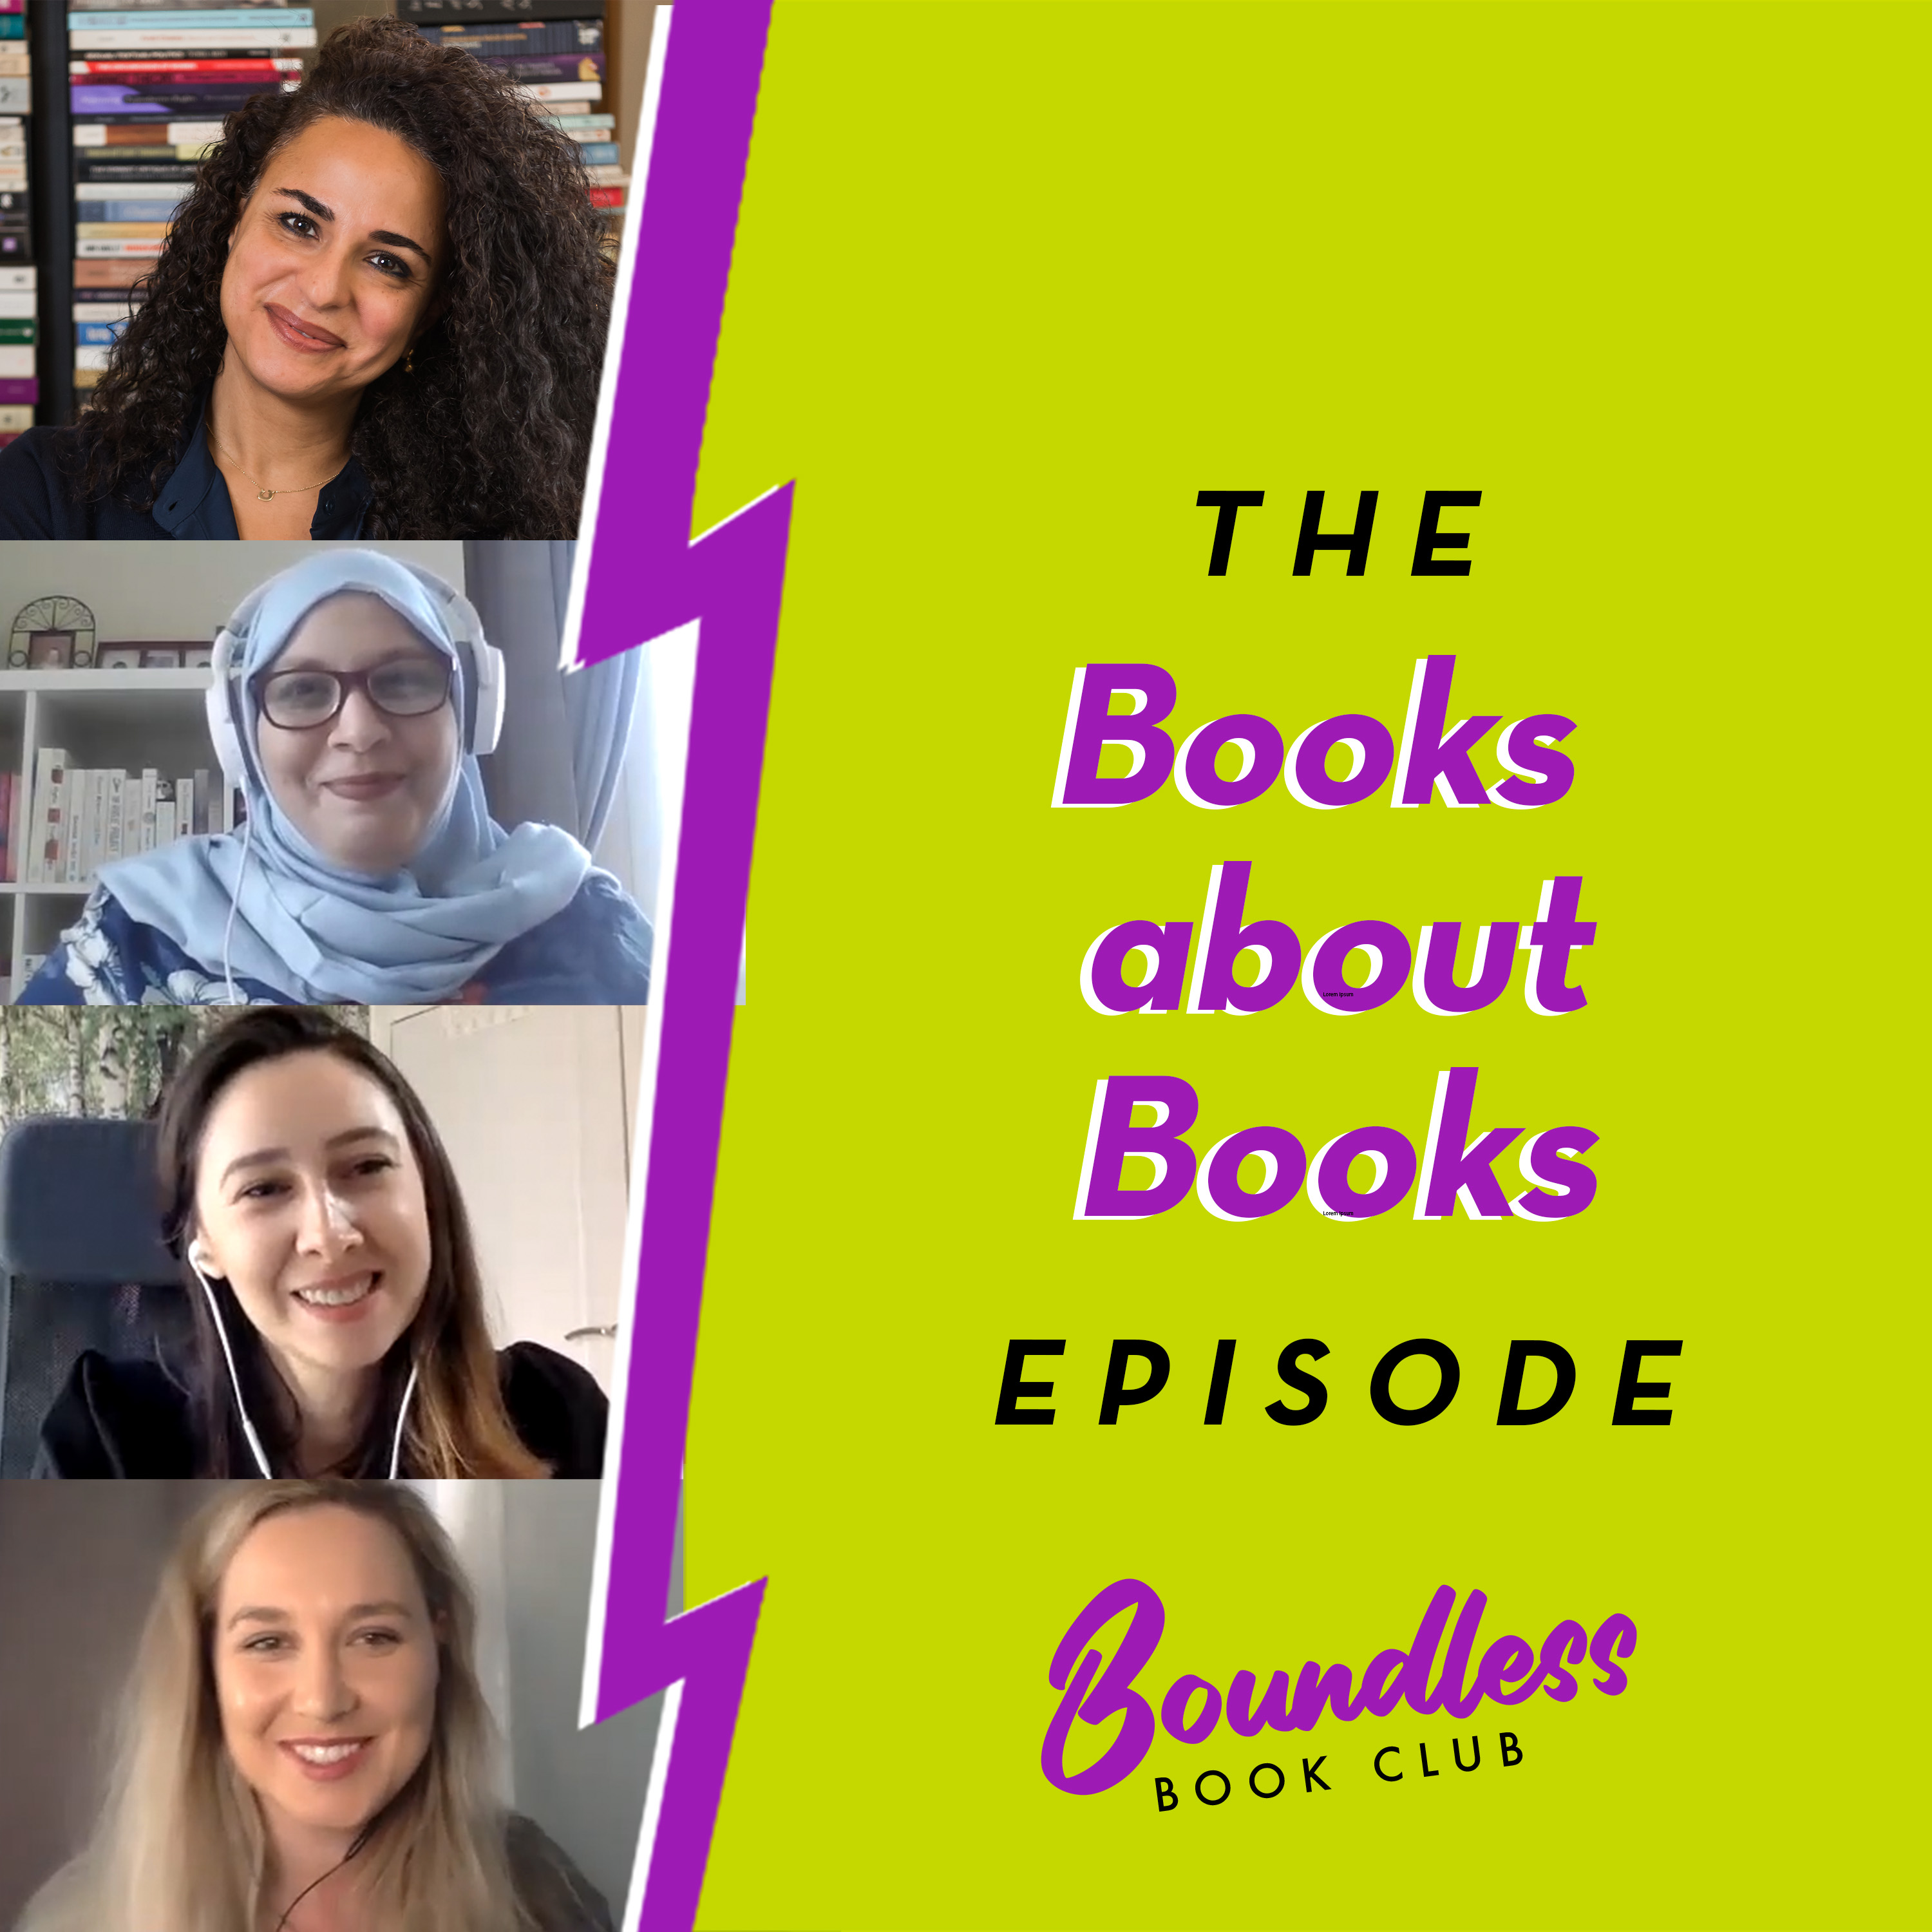 Artwork for podcast The Boundless Book Club